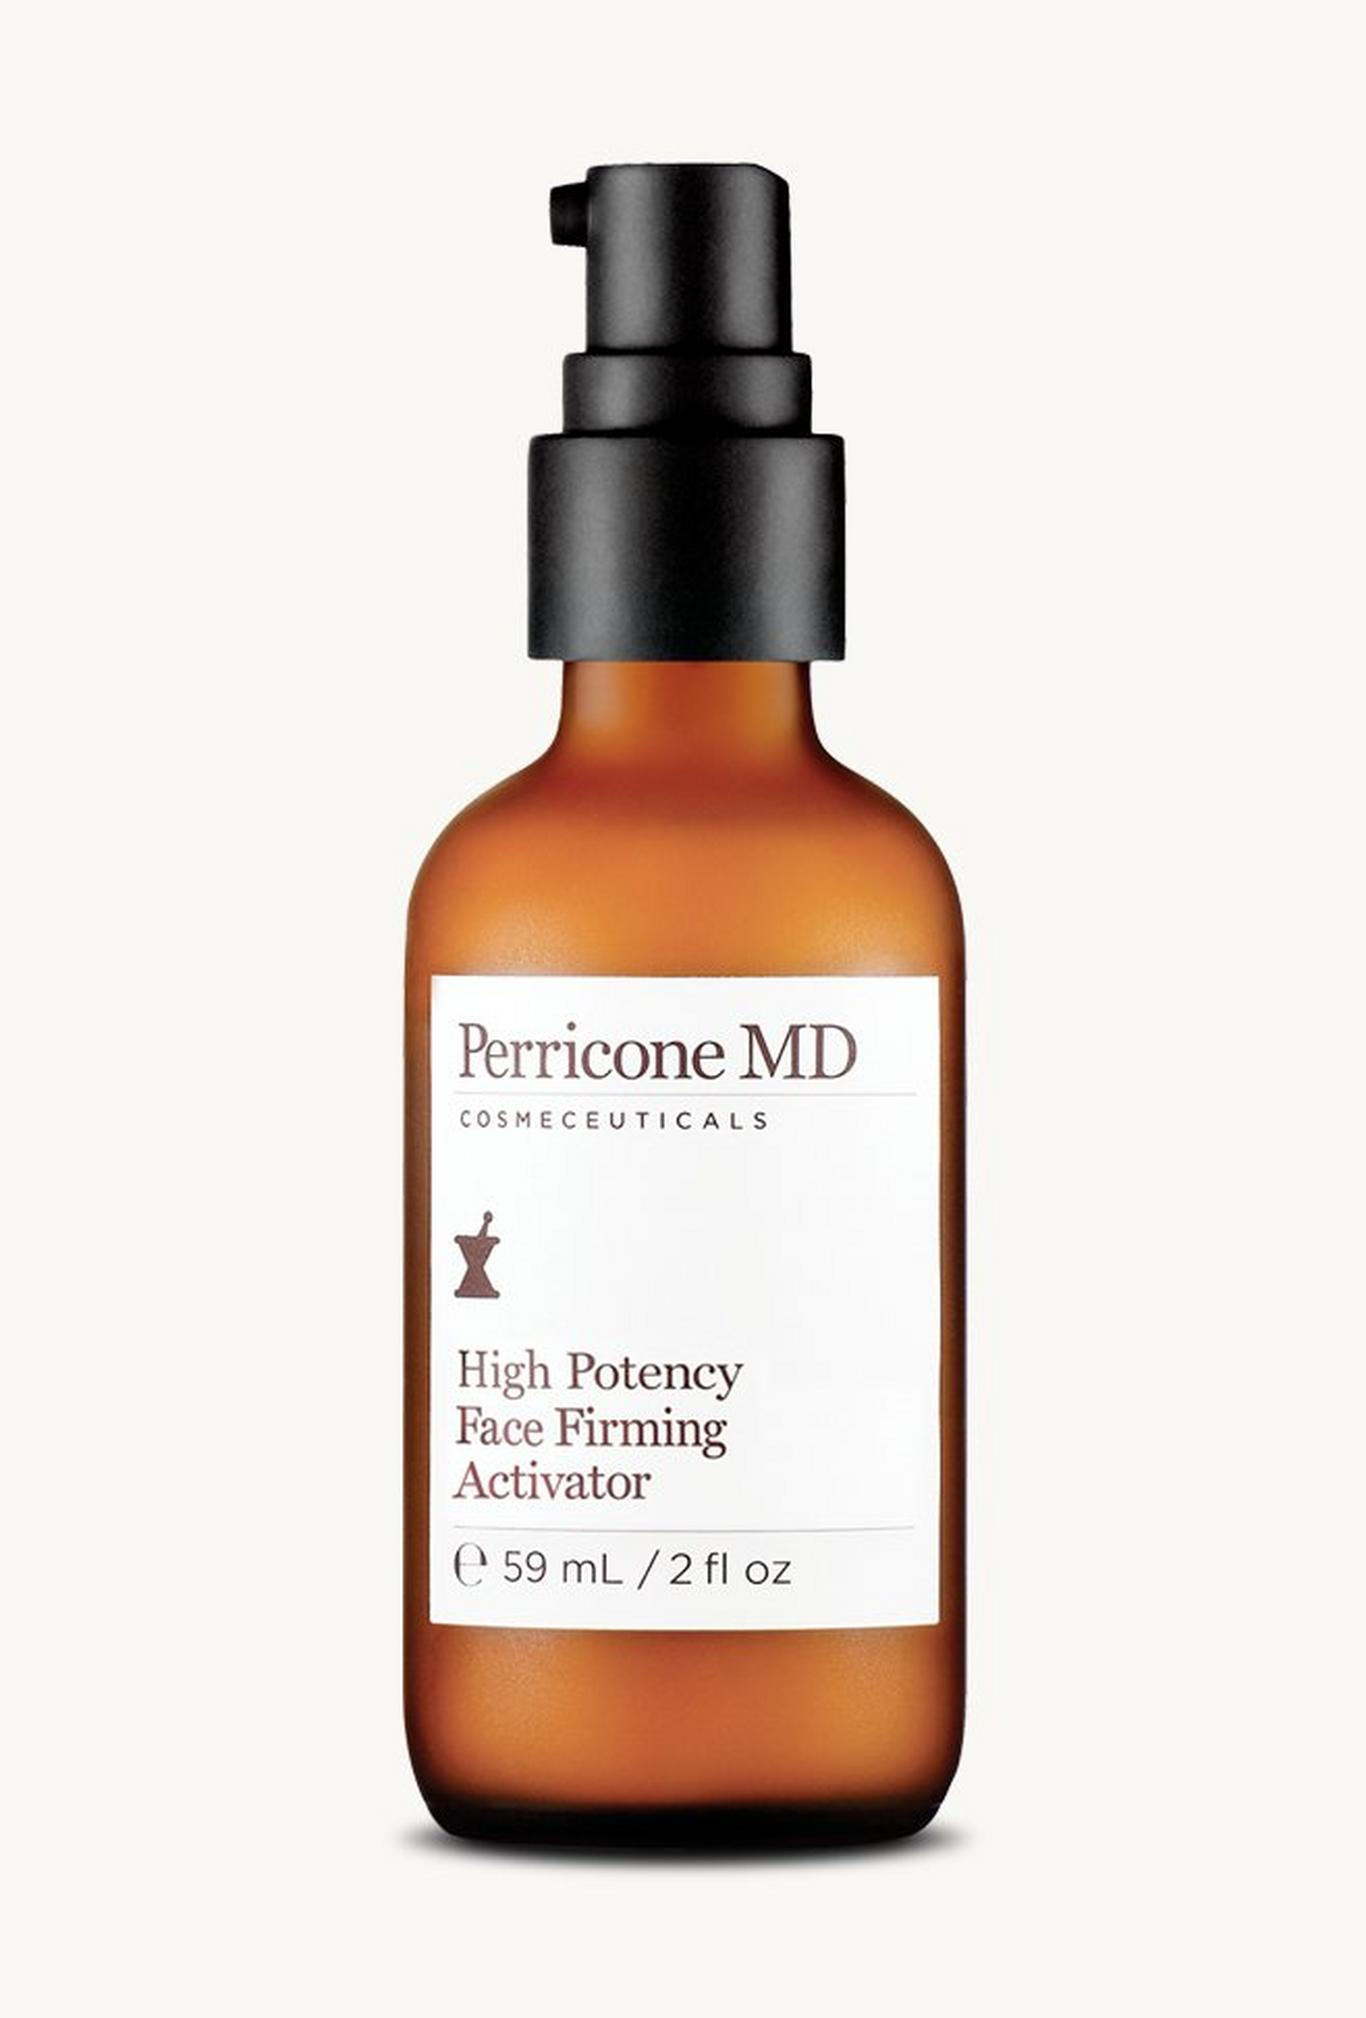 High Potency Face Firming Activator addresses the appearance of lines and wrinkles and leaves skin with a radiant glow.